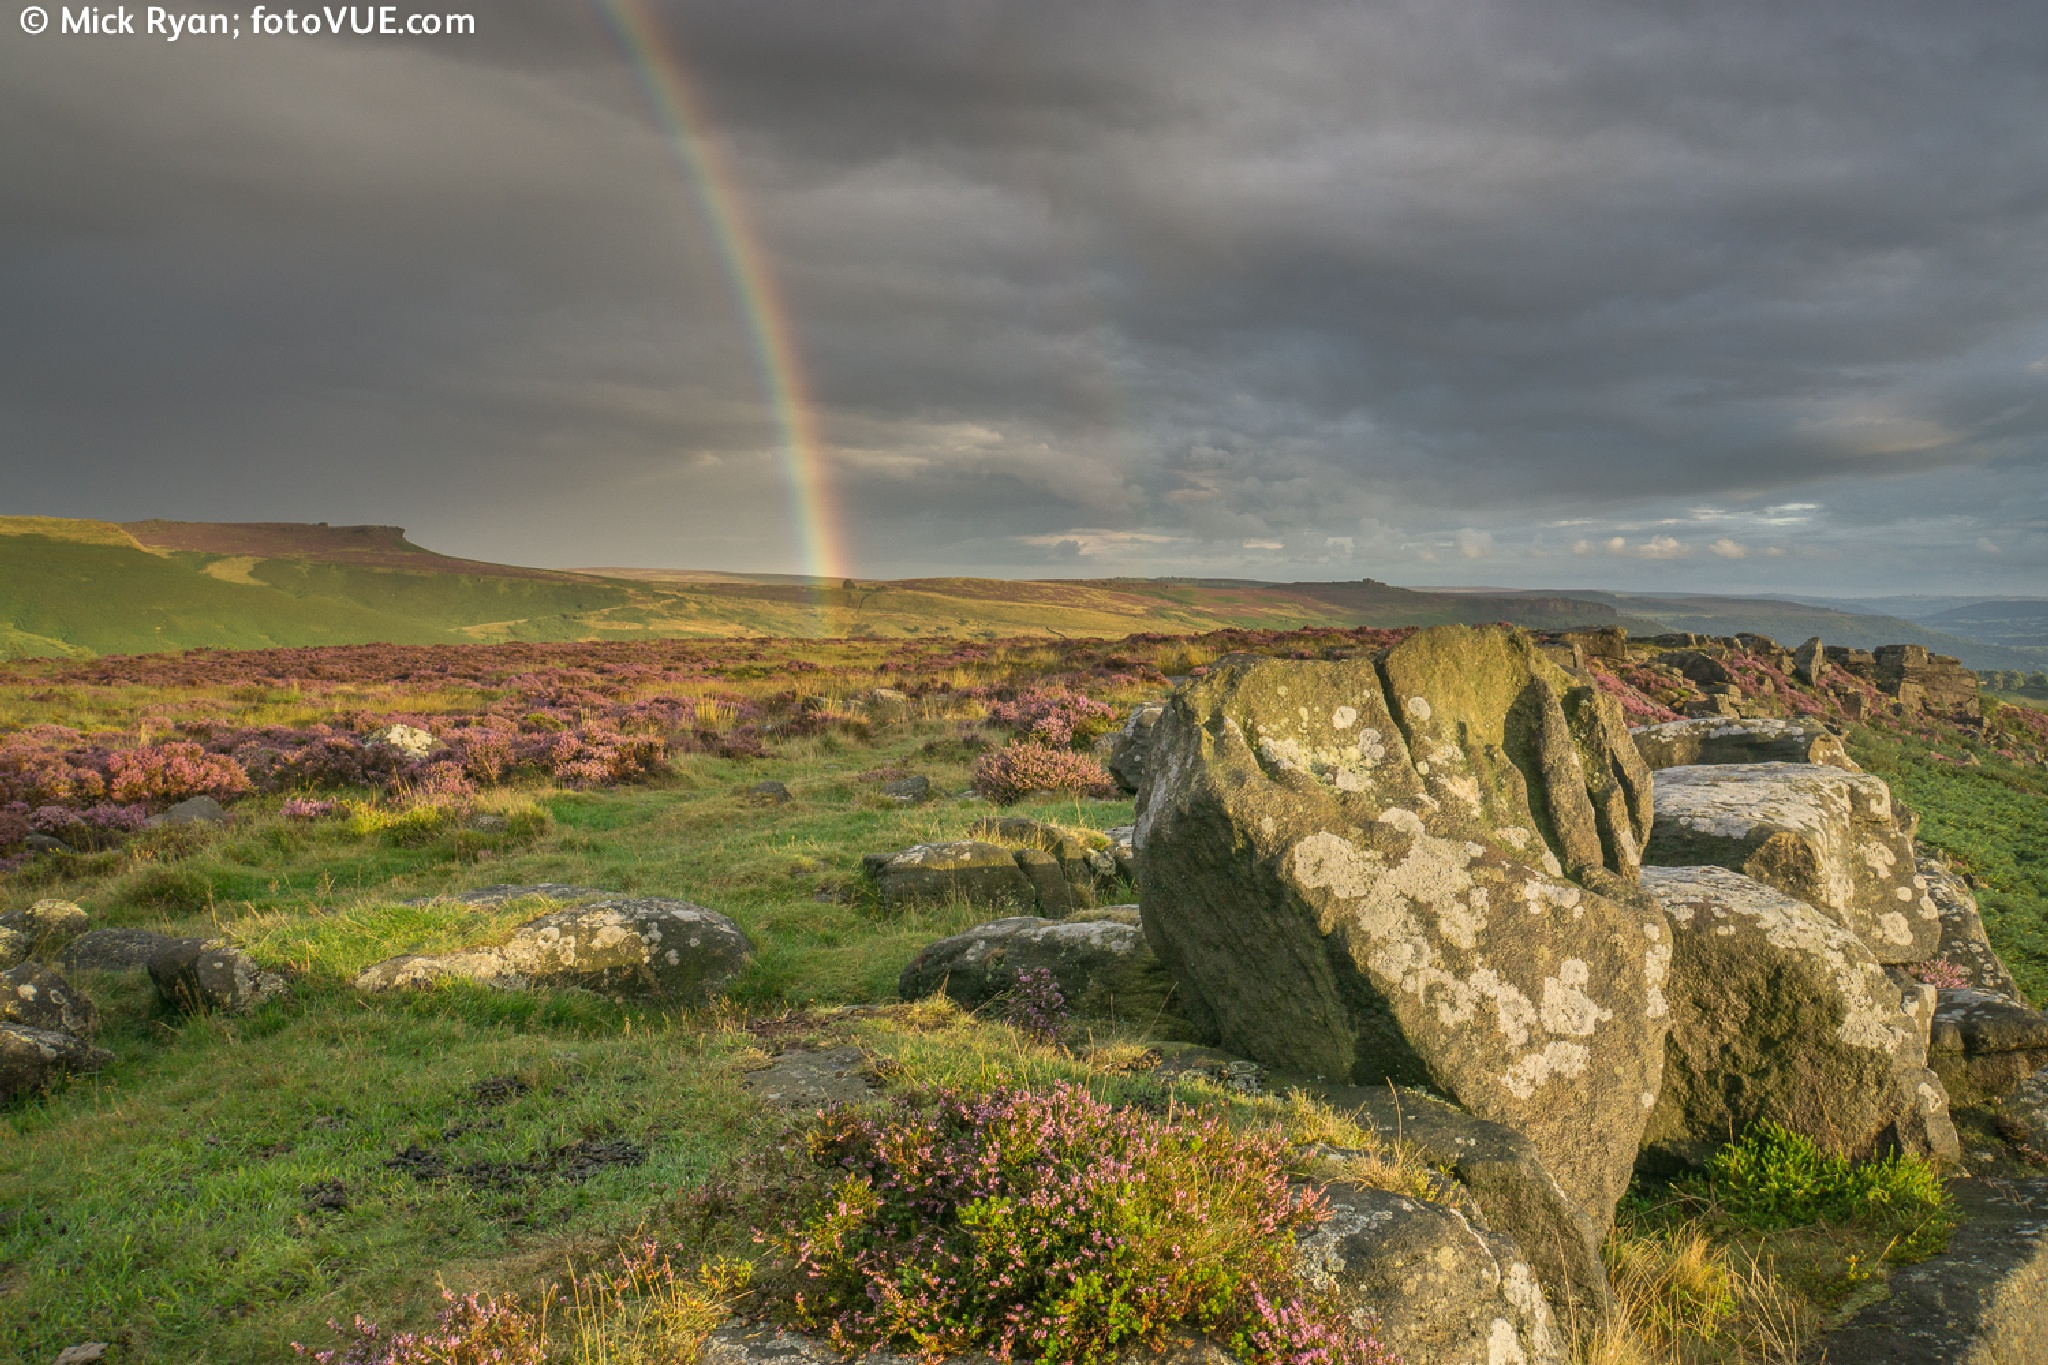 The Knuckle Stone #2 at Carrhead Rocks in the Peak District by mick.ryan.1650